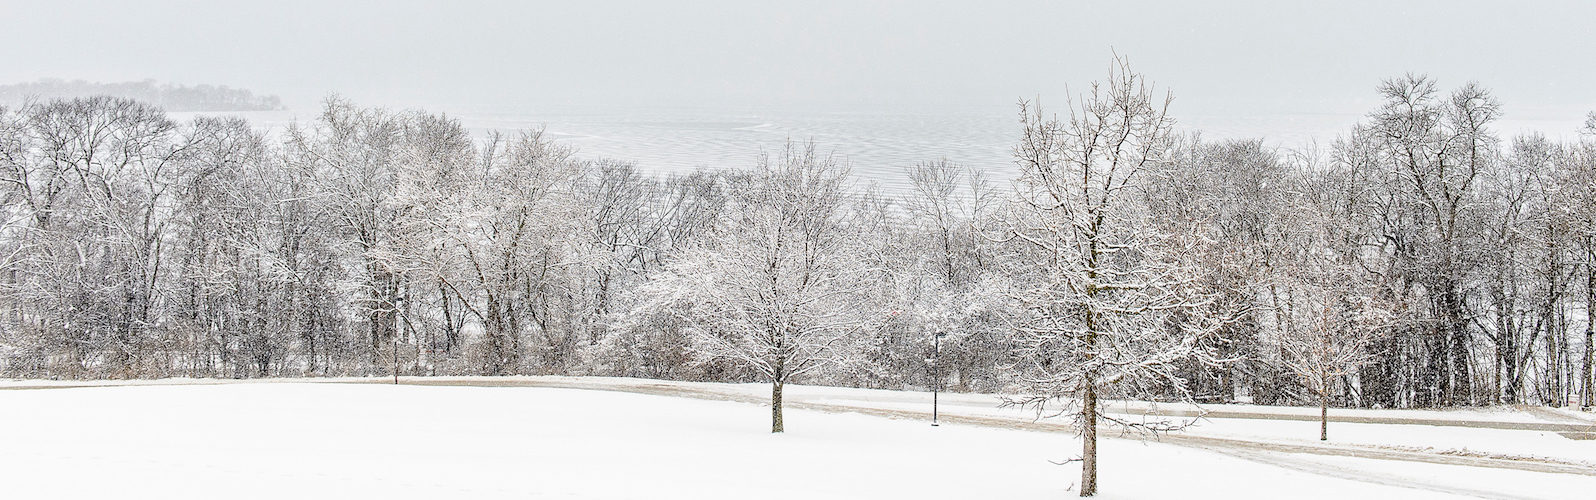 Frozen trees on the bank of Lake Mendota